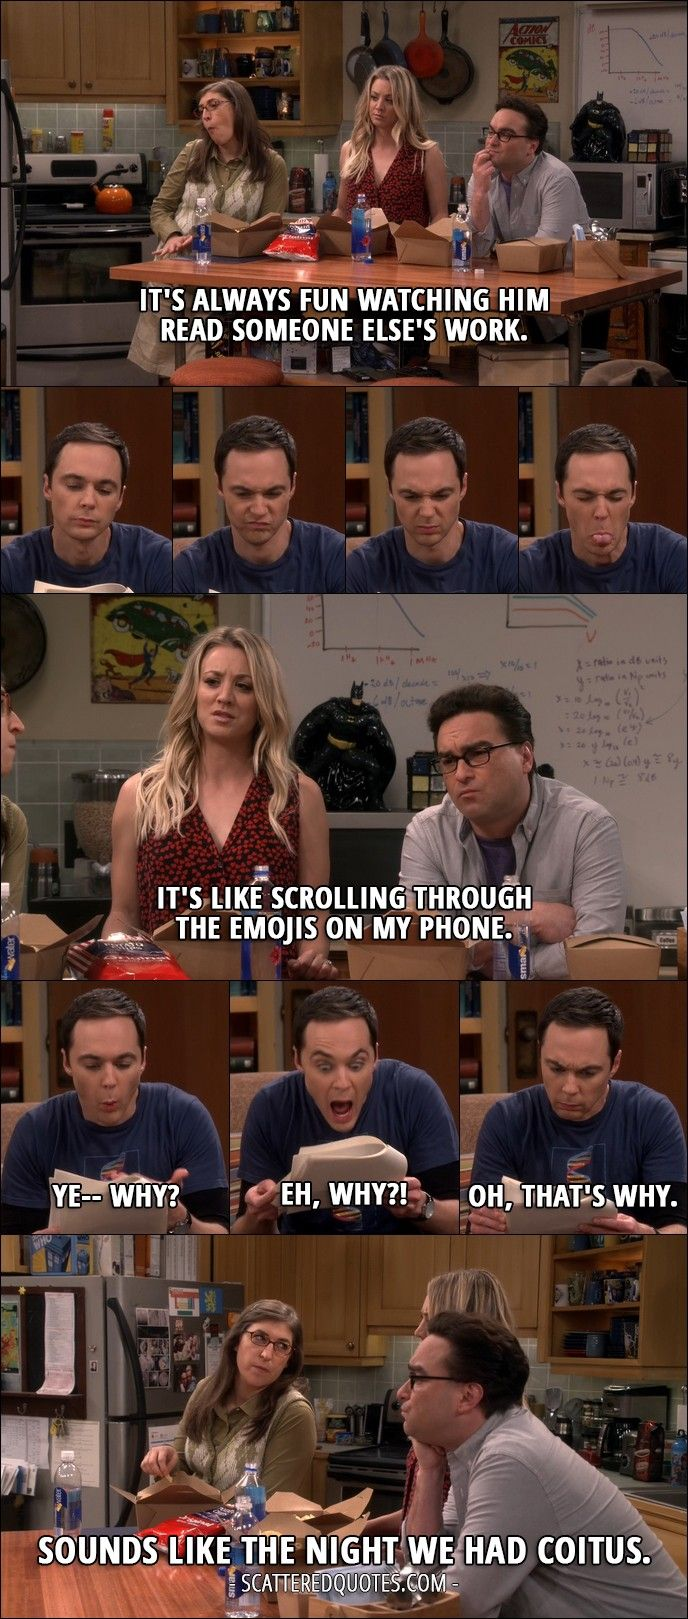 Quote from The Big Bang Theory 10x09 │  Leonard Hofstadter: It's always fun watching him read someone else's work. Penny Hofstadter: It's like scrolling through the emojis on my phone. Sheldon Cooper: Ye– why? Eh, why?! Oh, that's why. Amy Farrah Fowler: Sounds like the night we had coitus.